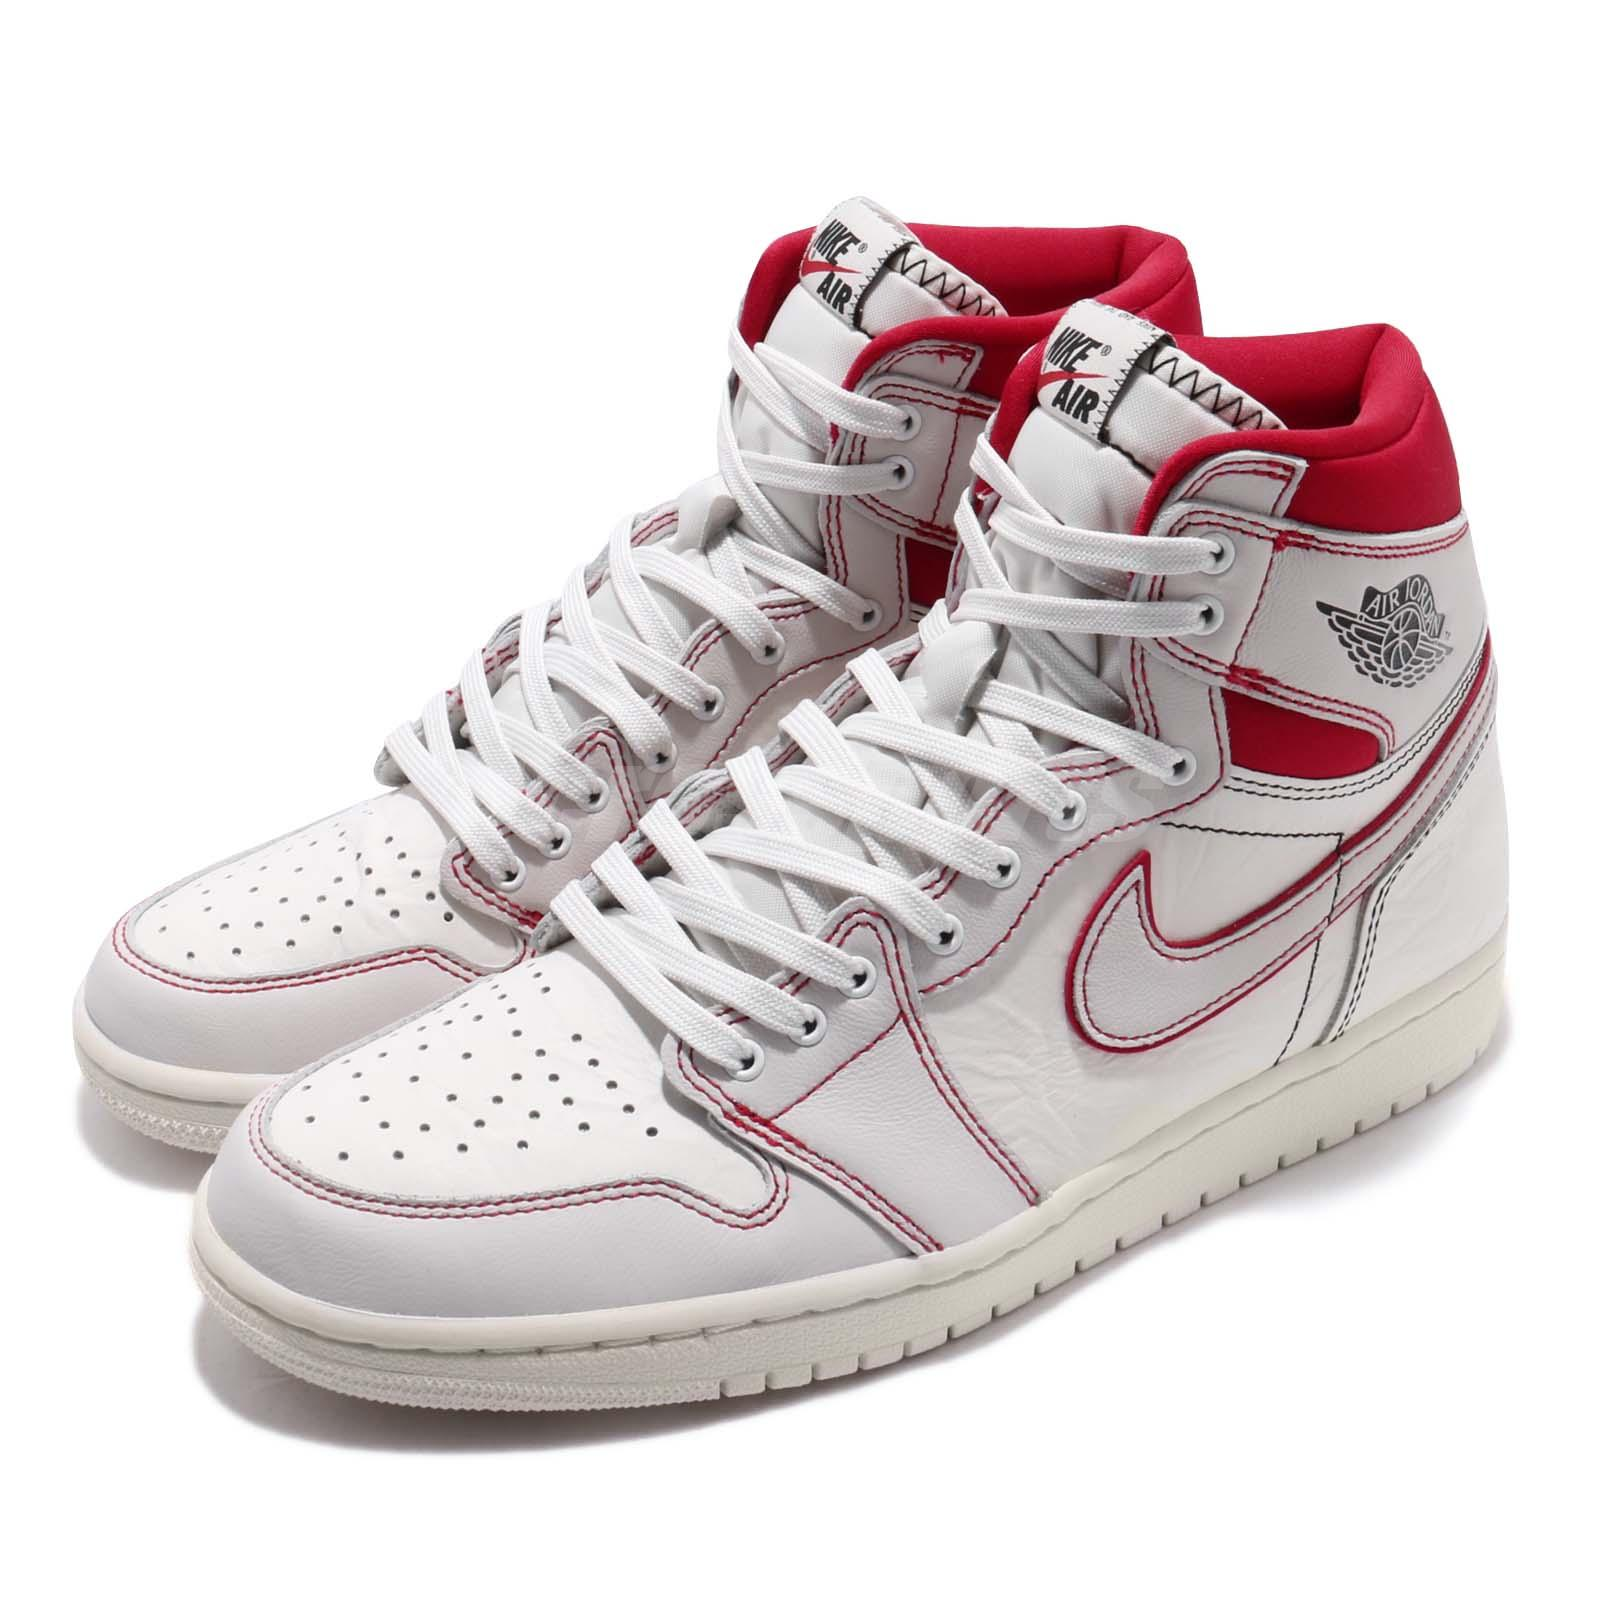 for whole family good texture best choice Details about Nike Air Jordan 1 Retro High OG Phantom Sail Red AJ1 Sneakers  555088-160